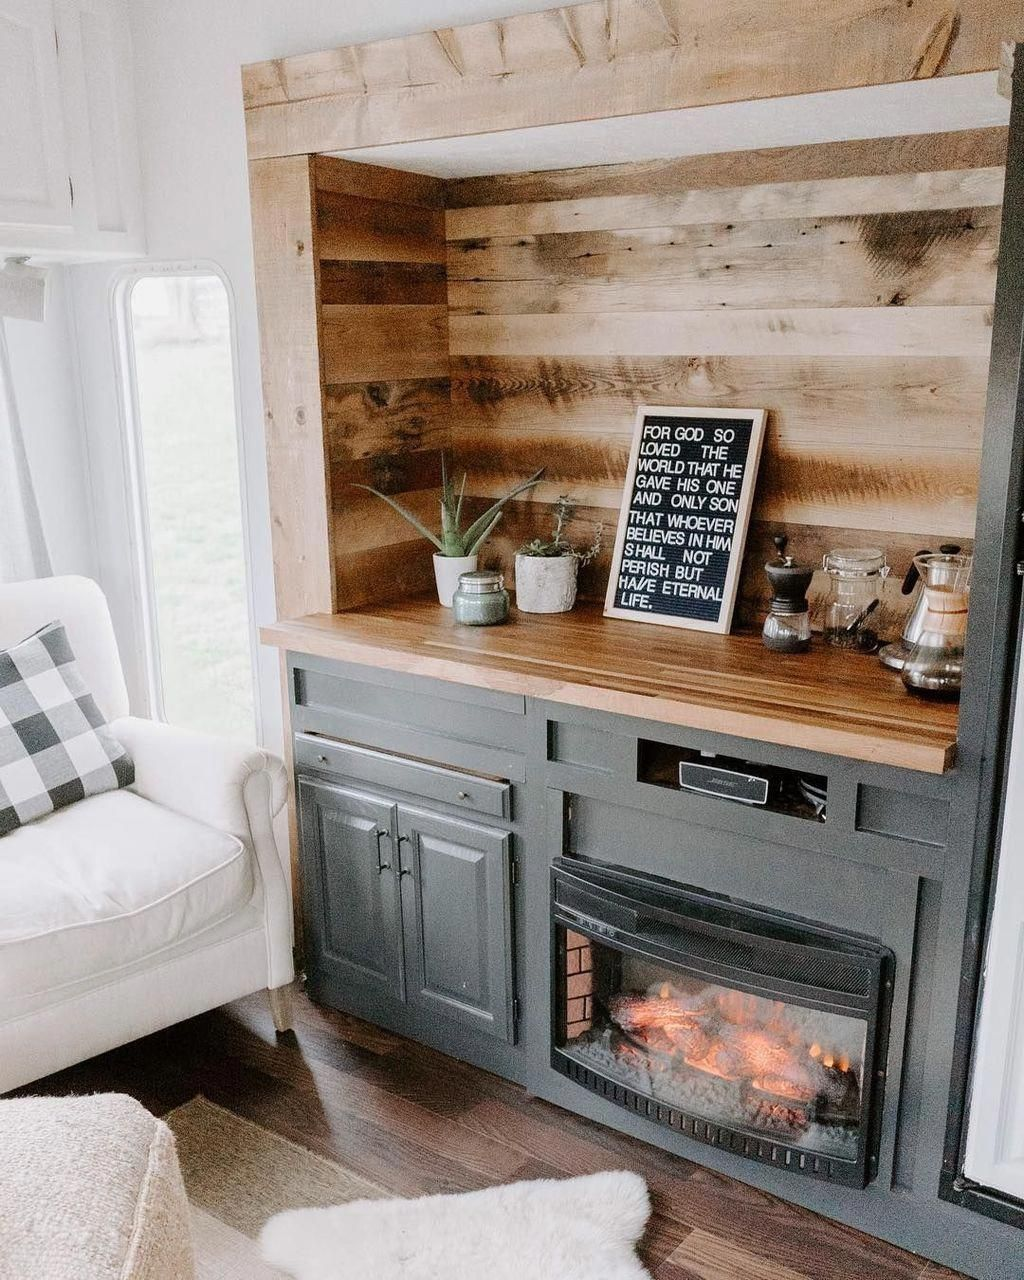 50 Awesome Fireplace Design Ideas For Small Houses